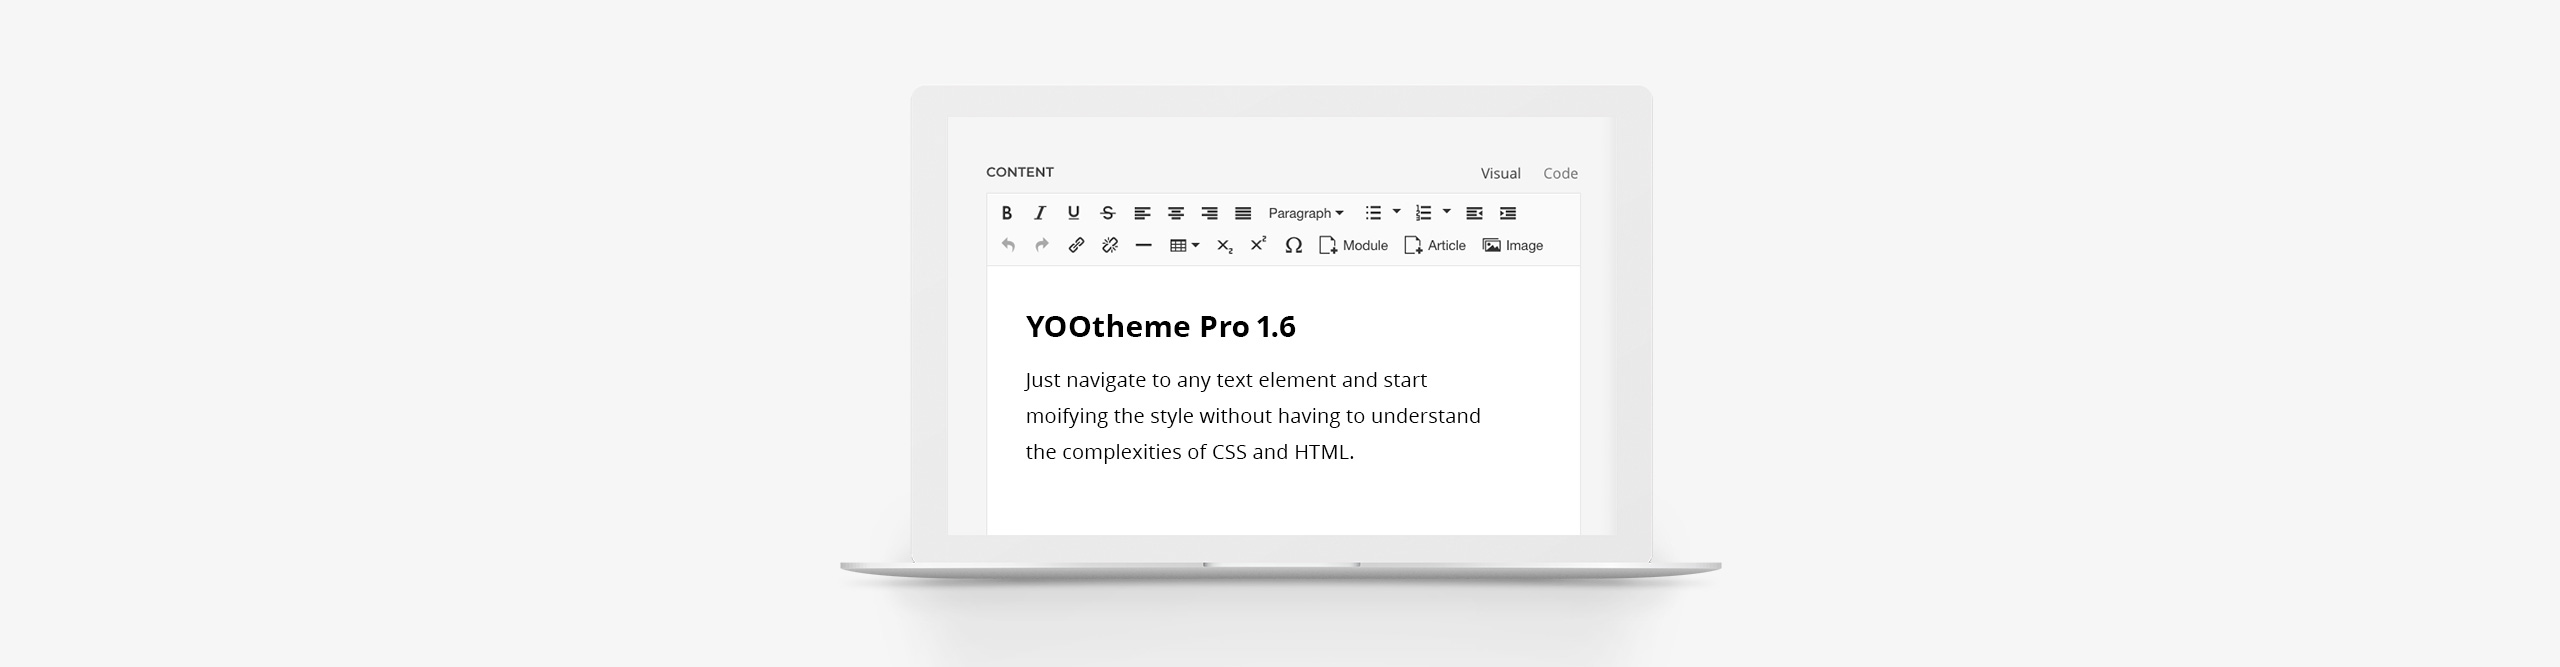 YOOtheme Pro 1.6 – WYSIWYG editor support and new elements - YOOtheme